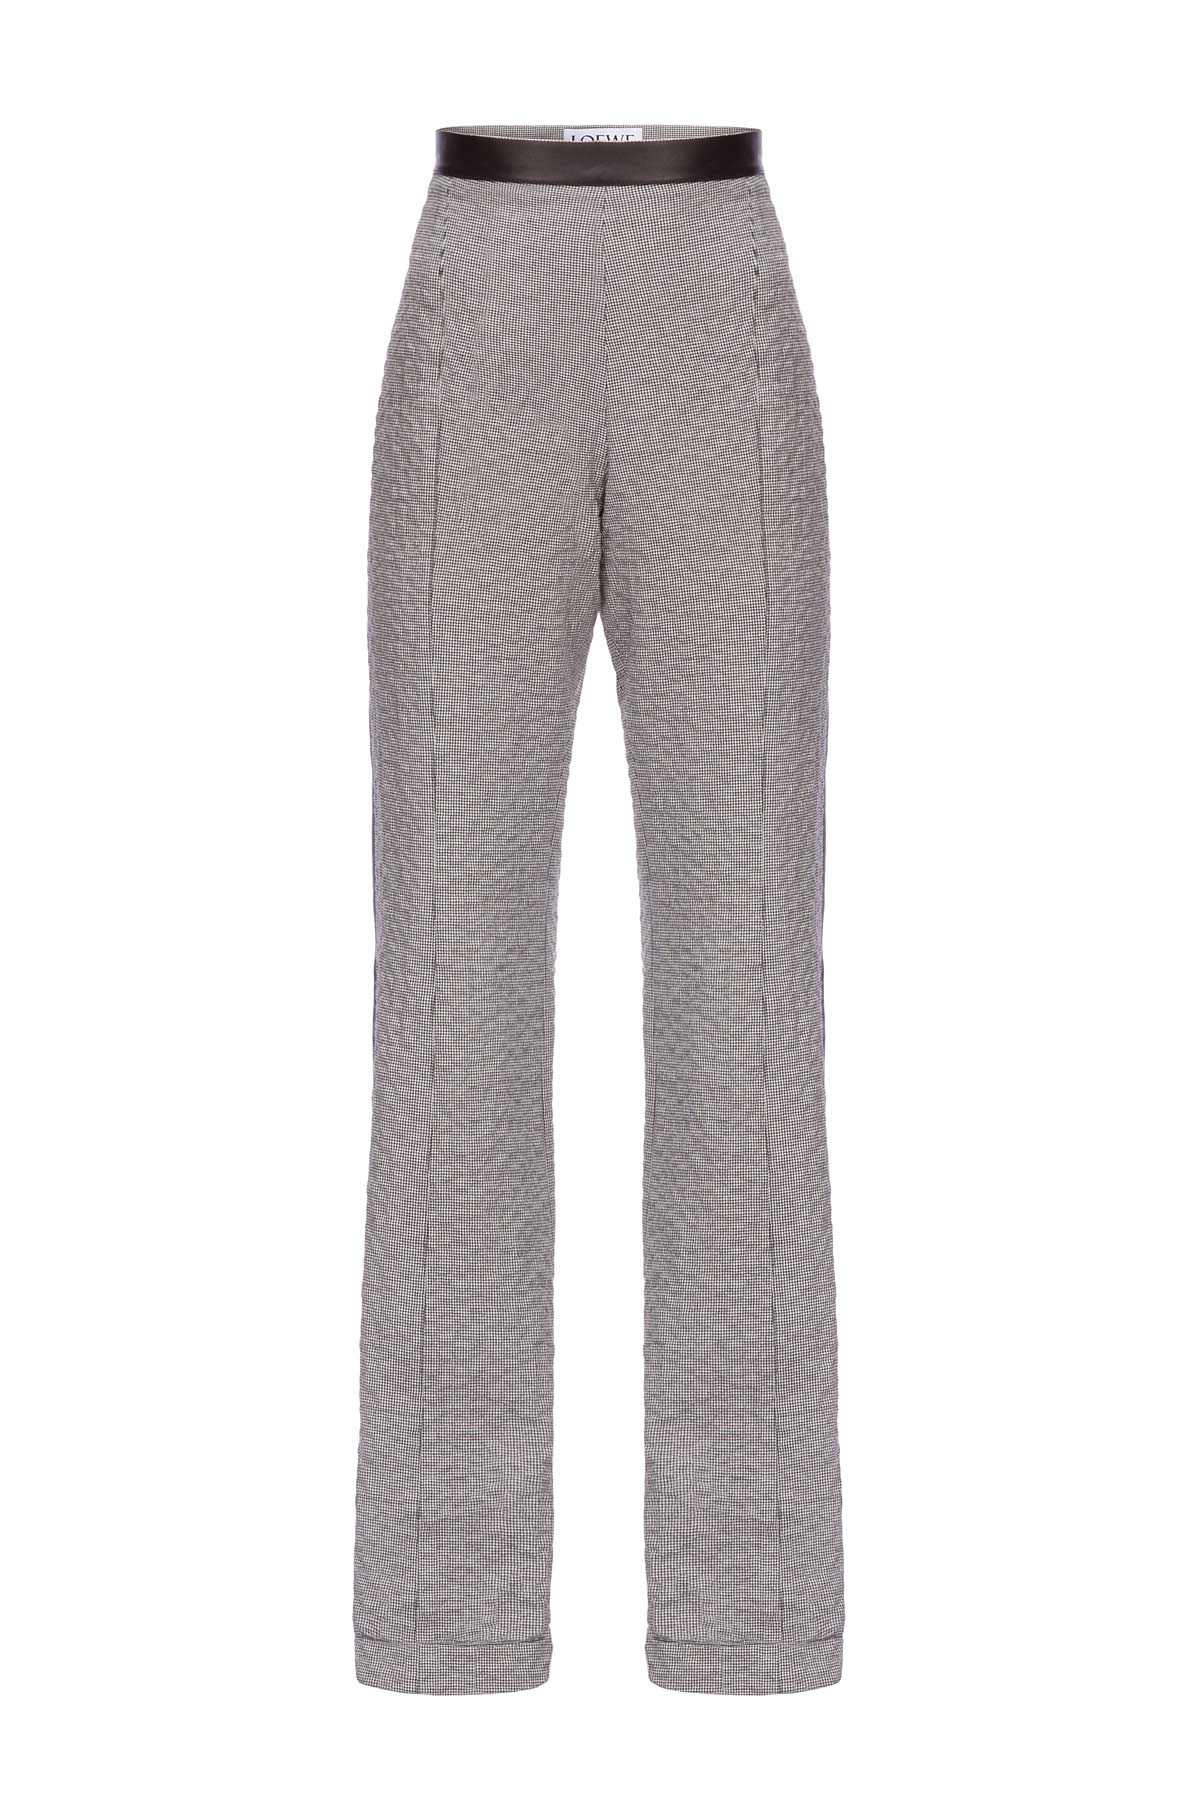 LOEWE Black Piping Trousers Black/White front